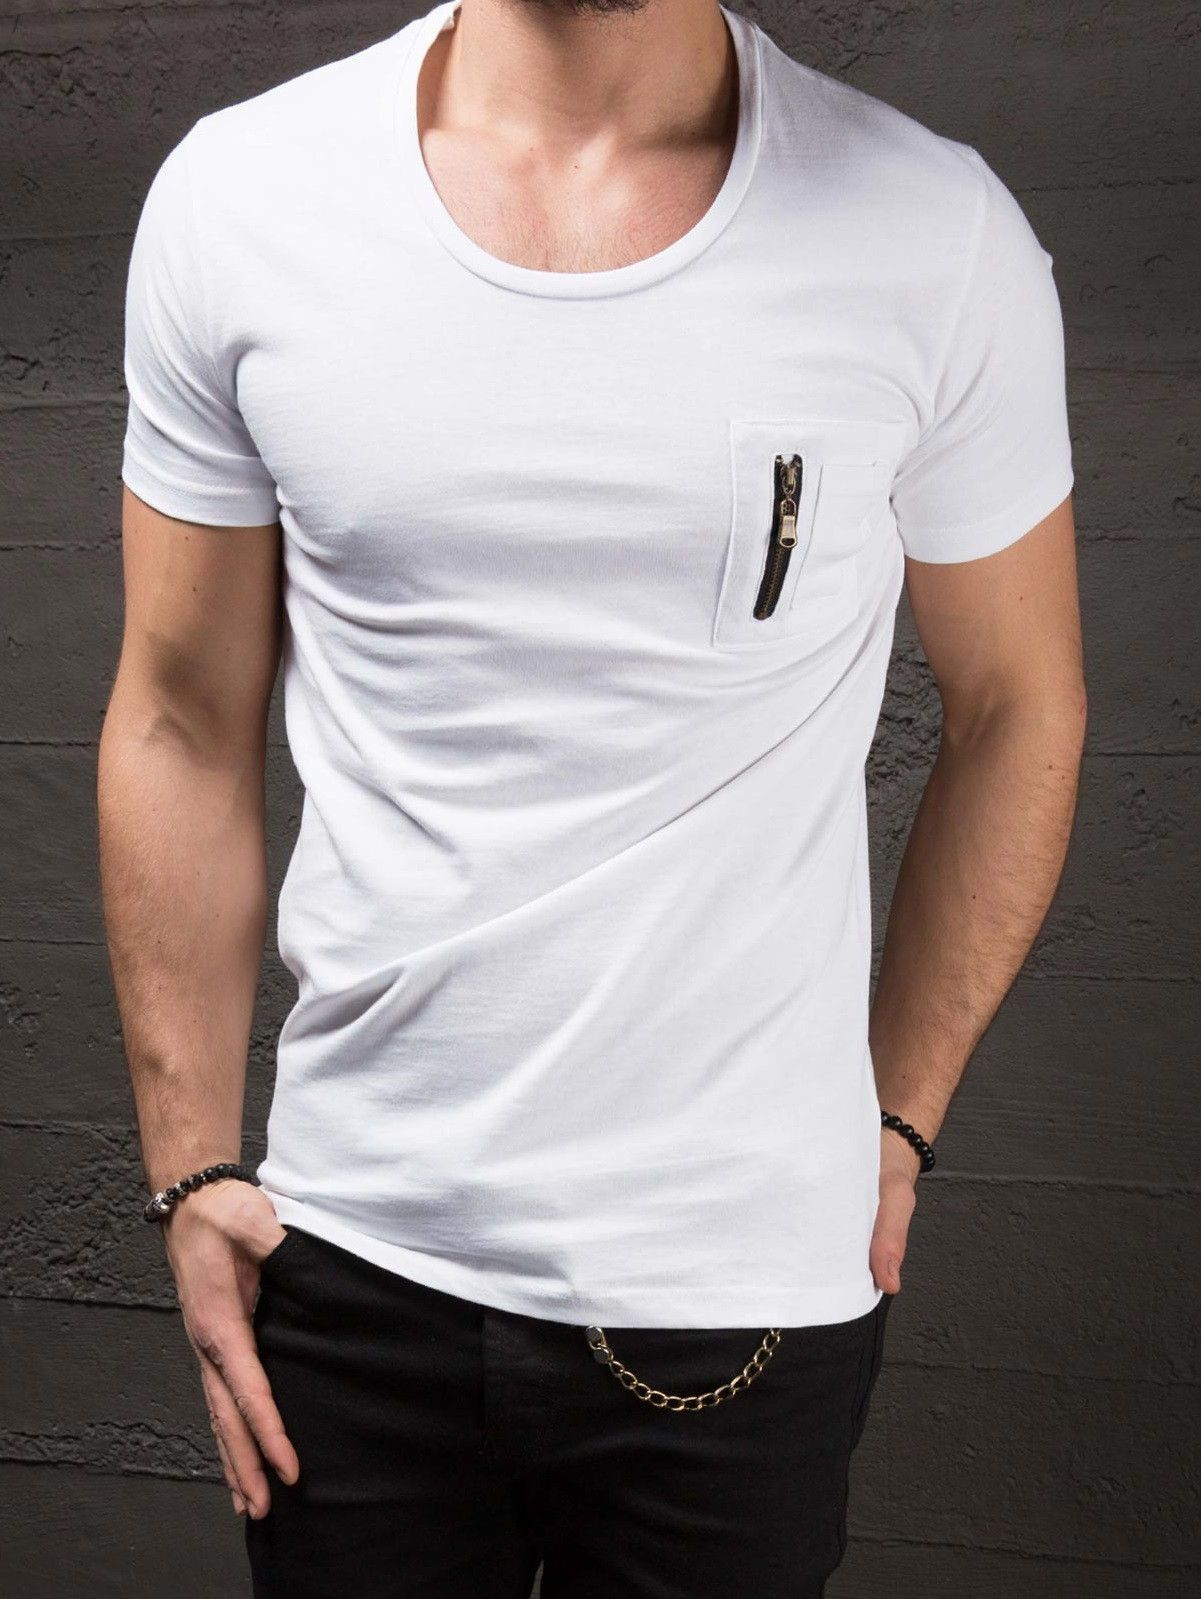 9b6ff2b2bdbd Great fitted shirt. a real head tuner, a true show-stopper PLEASE USE THE  SIZE CHART TO PICK THE CORRECT SIZE FOR YOU. -100% COTTON -BODY/SLIM/ MUSCLE  FIT ...